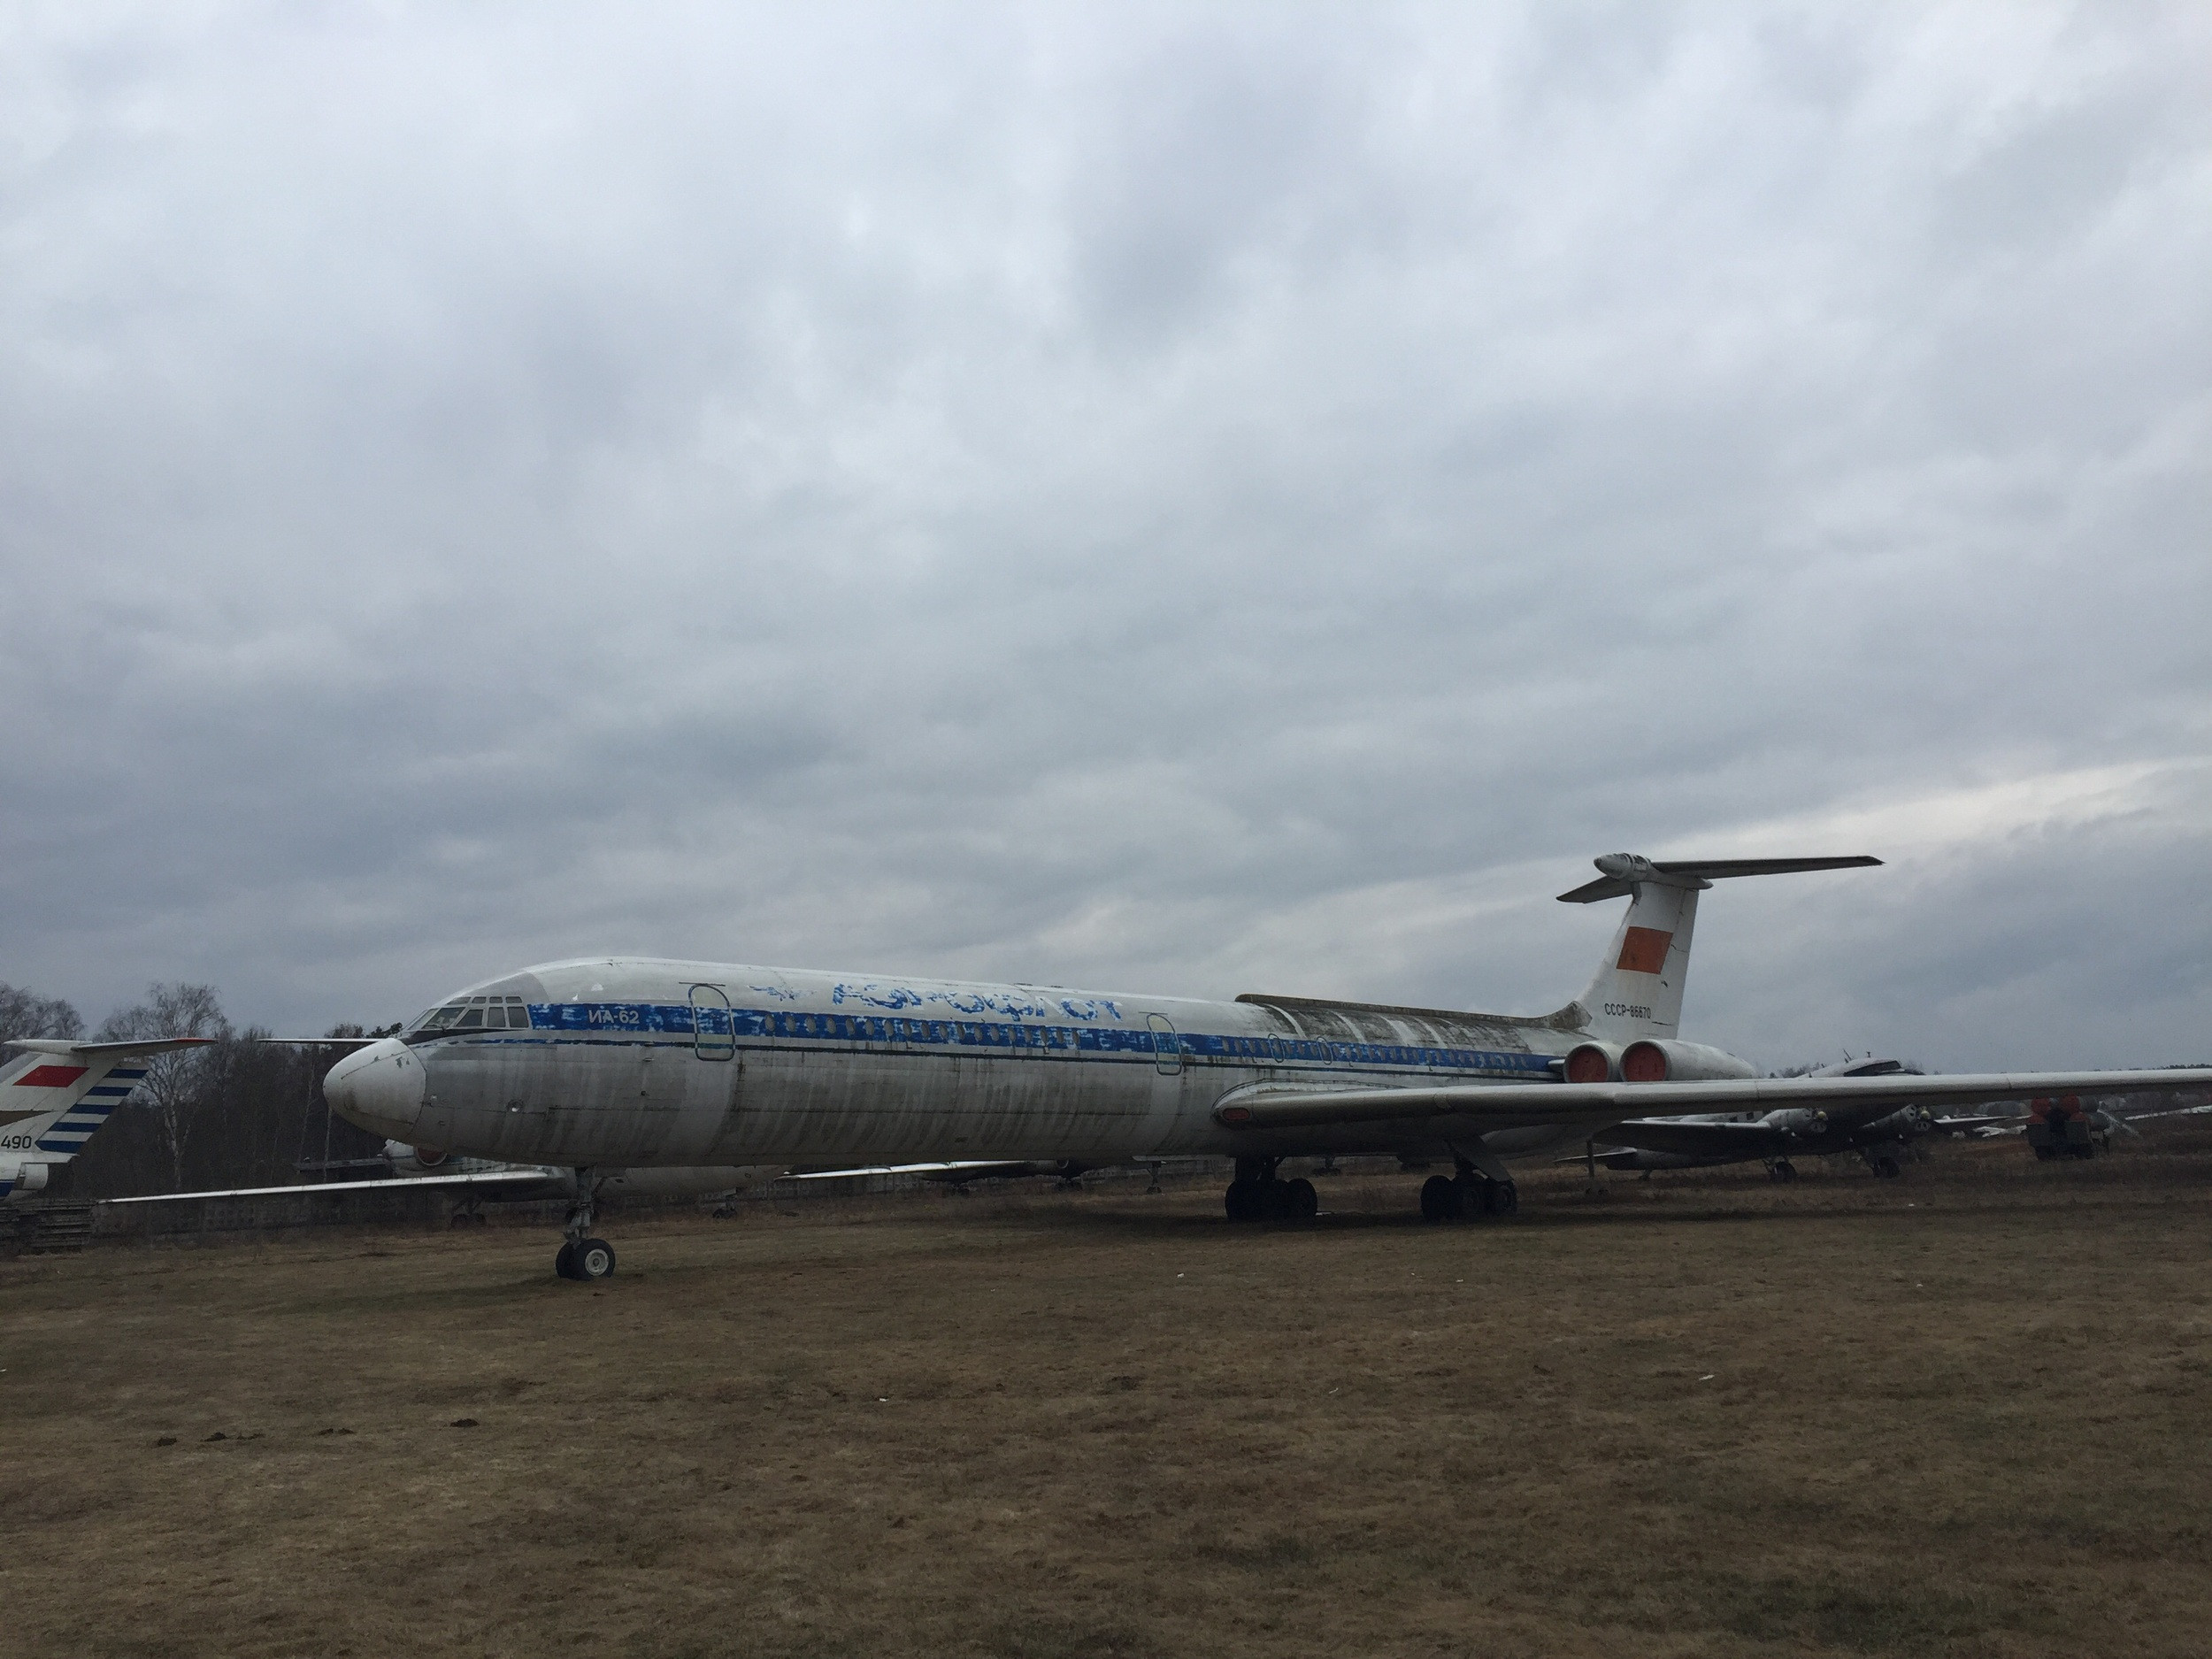 An Ilyushin Il-62, a Soviet-era long range airliner. Even today, there are still some in service with the Russian govenrment.